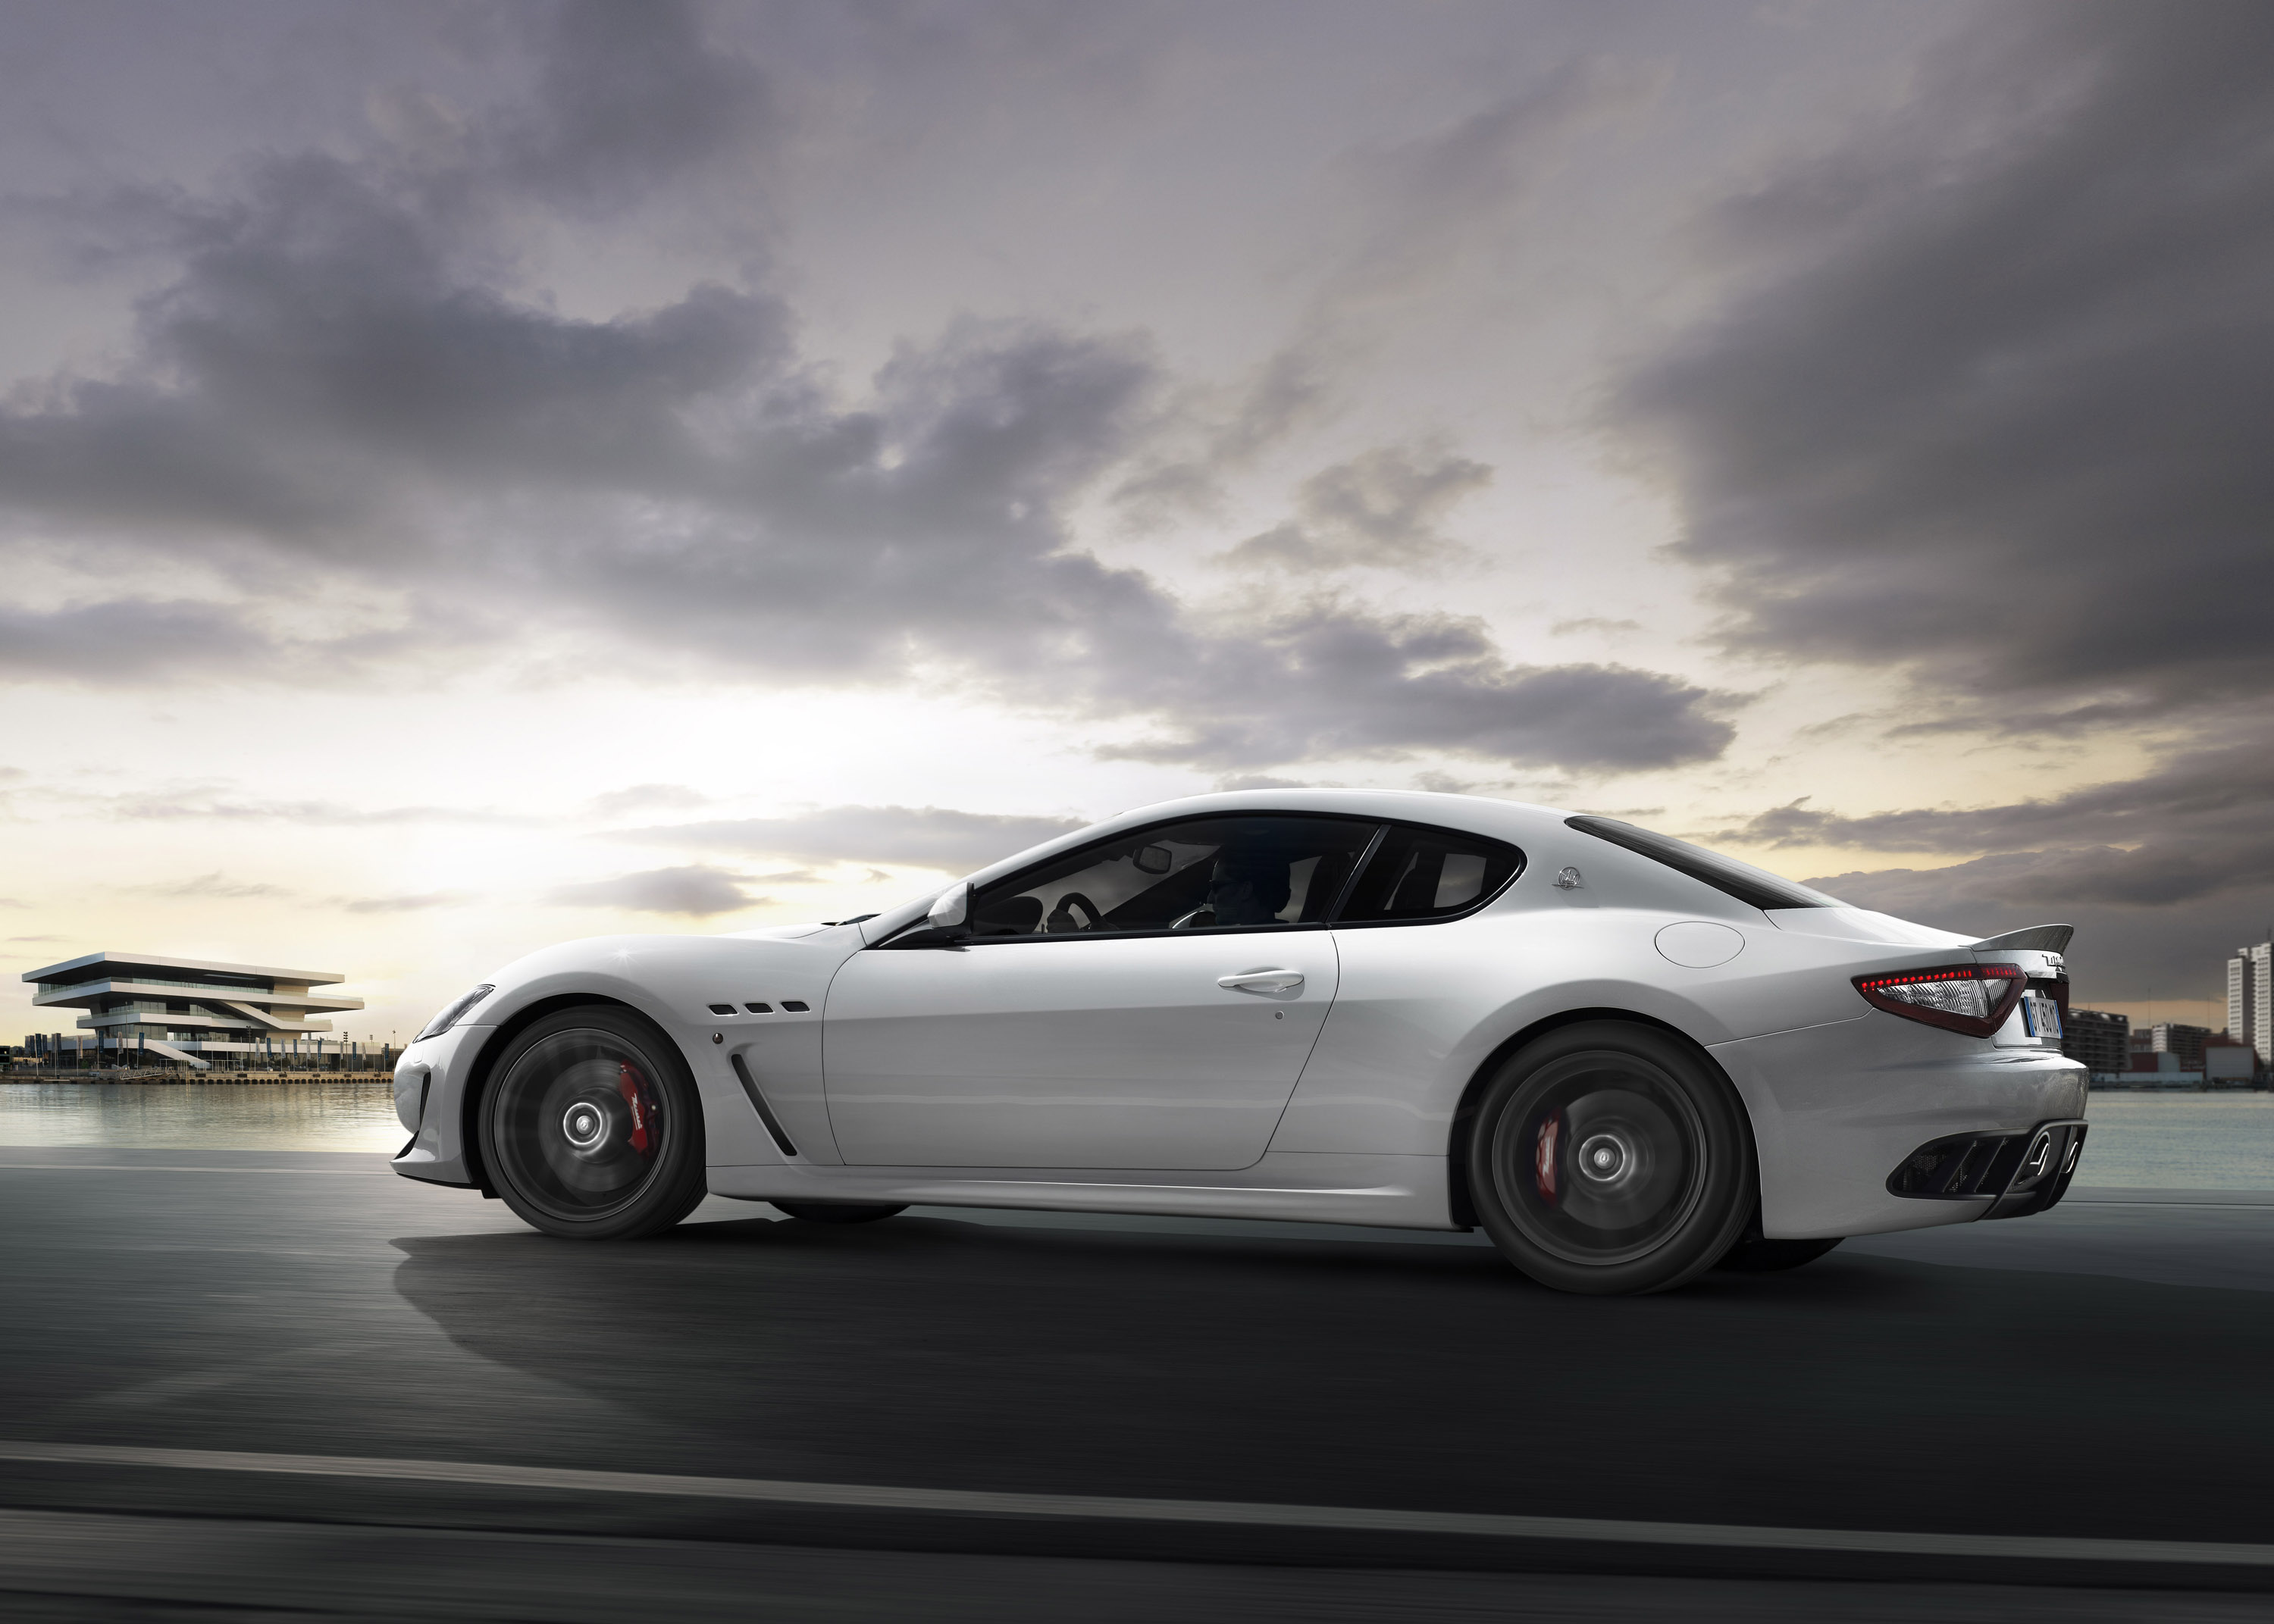 maserati granturismo mc stradale uk debut. Black Bedroom Furniture Sets. Home Design Ideas